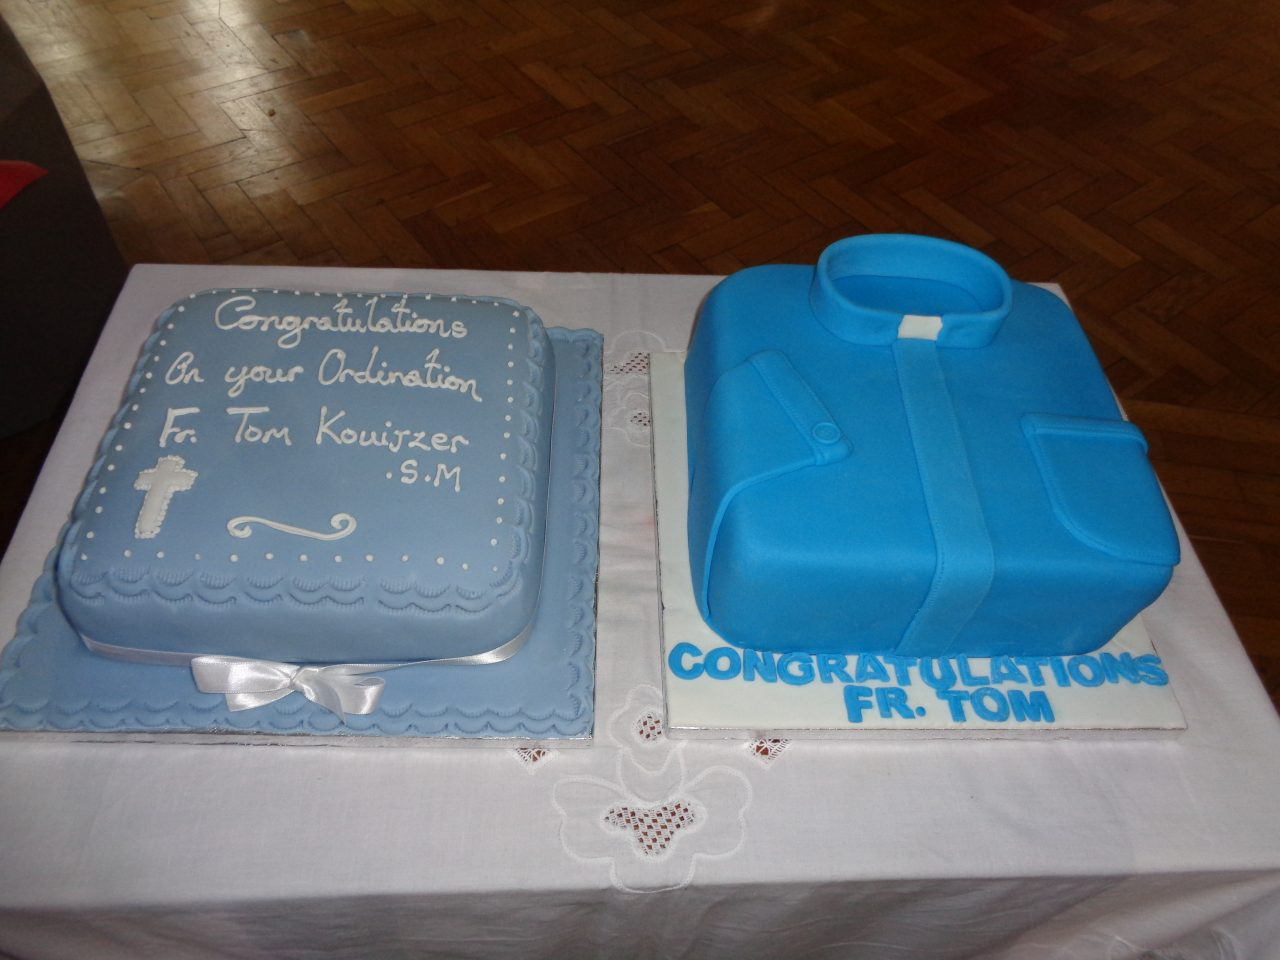 Fr. Tom has not just one but two cakes to celebrate his First Mass